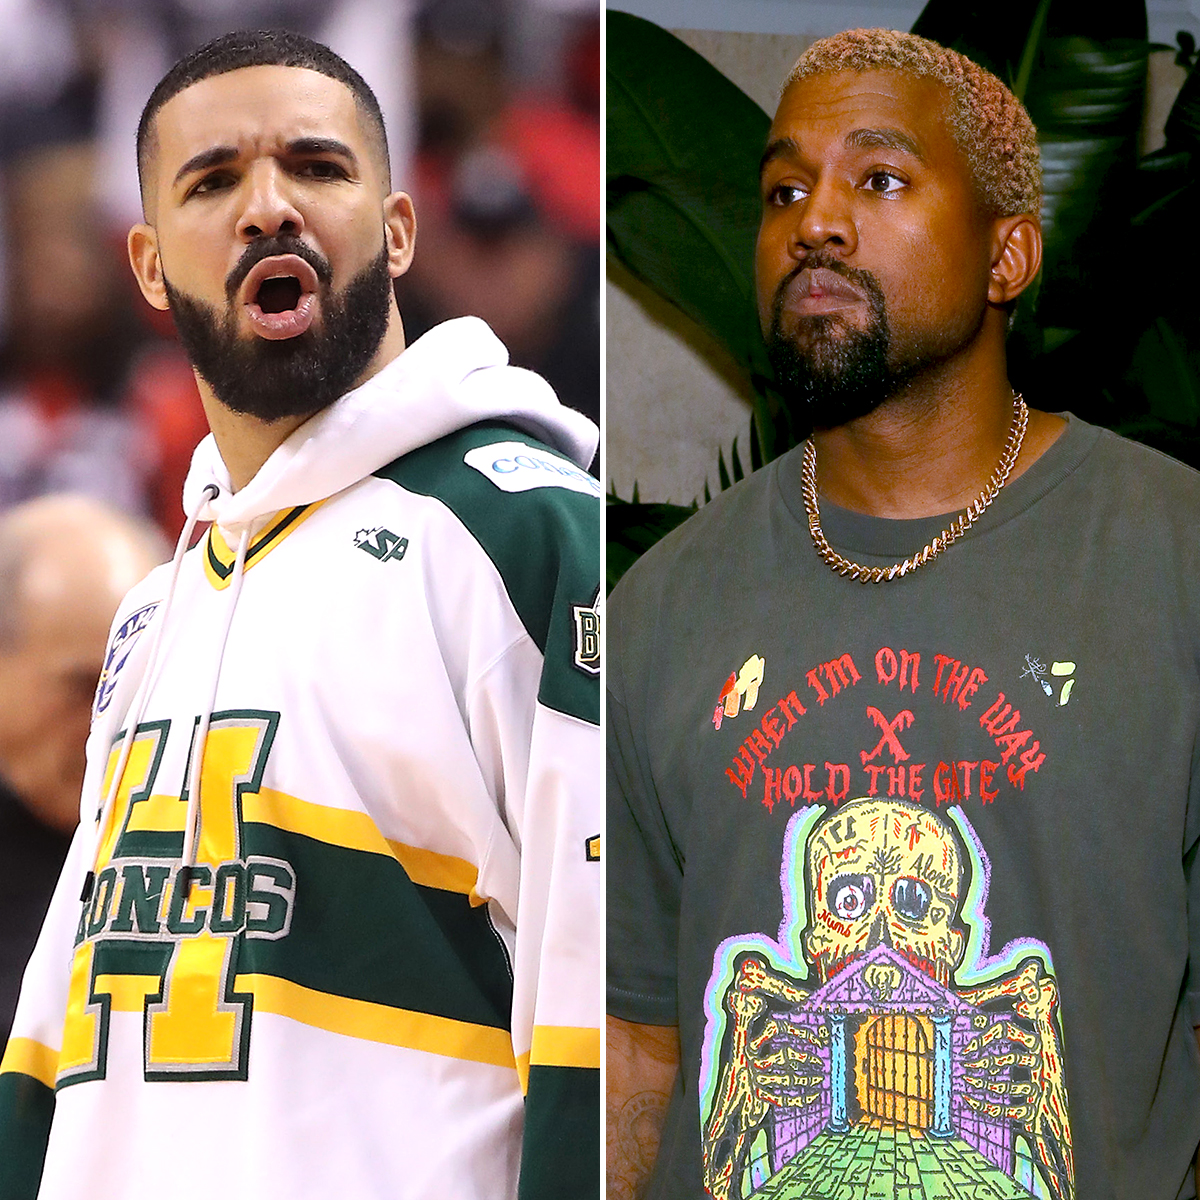 """drake-kanye-west-feud-2 - Drake wasn't going to take Pusha T and West's shady snub lying down, however. He later responded with """"Duppy Freestyle,"""" where he discussed assisting the """"Jesus Walks"""" rapper on """"Father Stretch My Hands"""" and """"30 Hours"""" from 2016's The Life of Pablo ."""